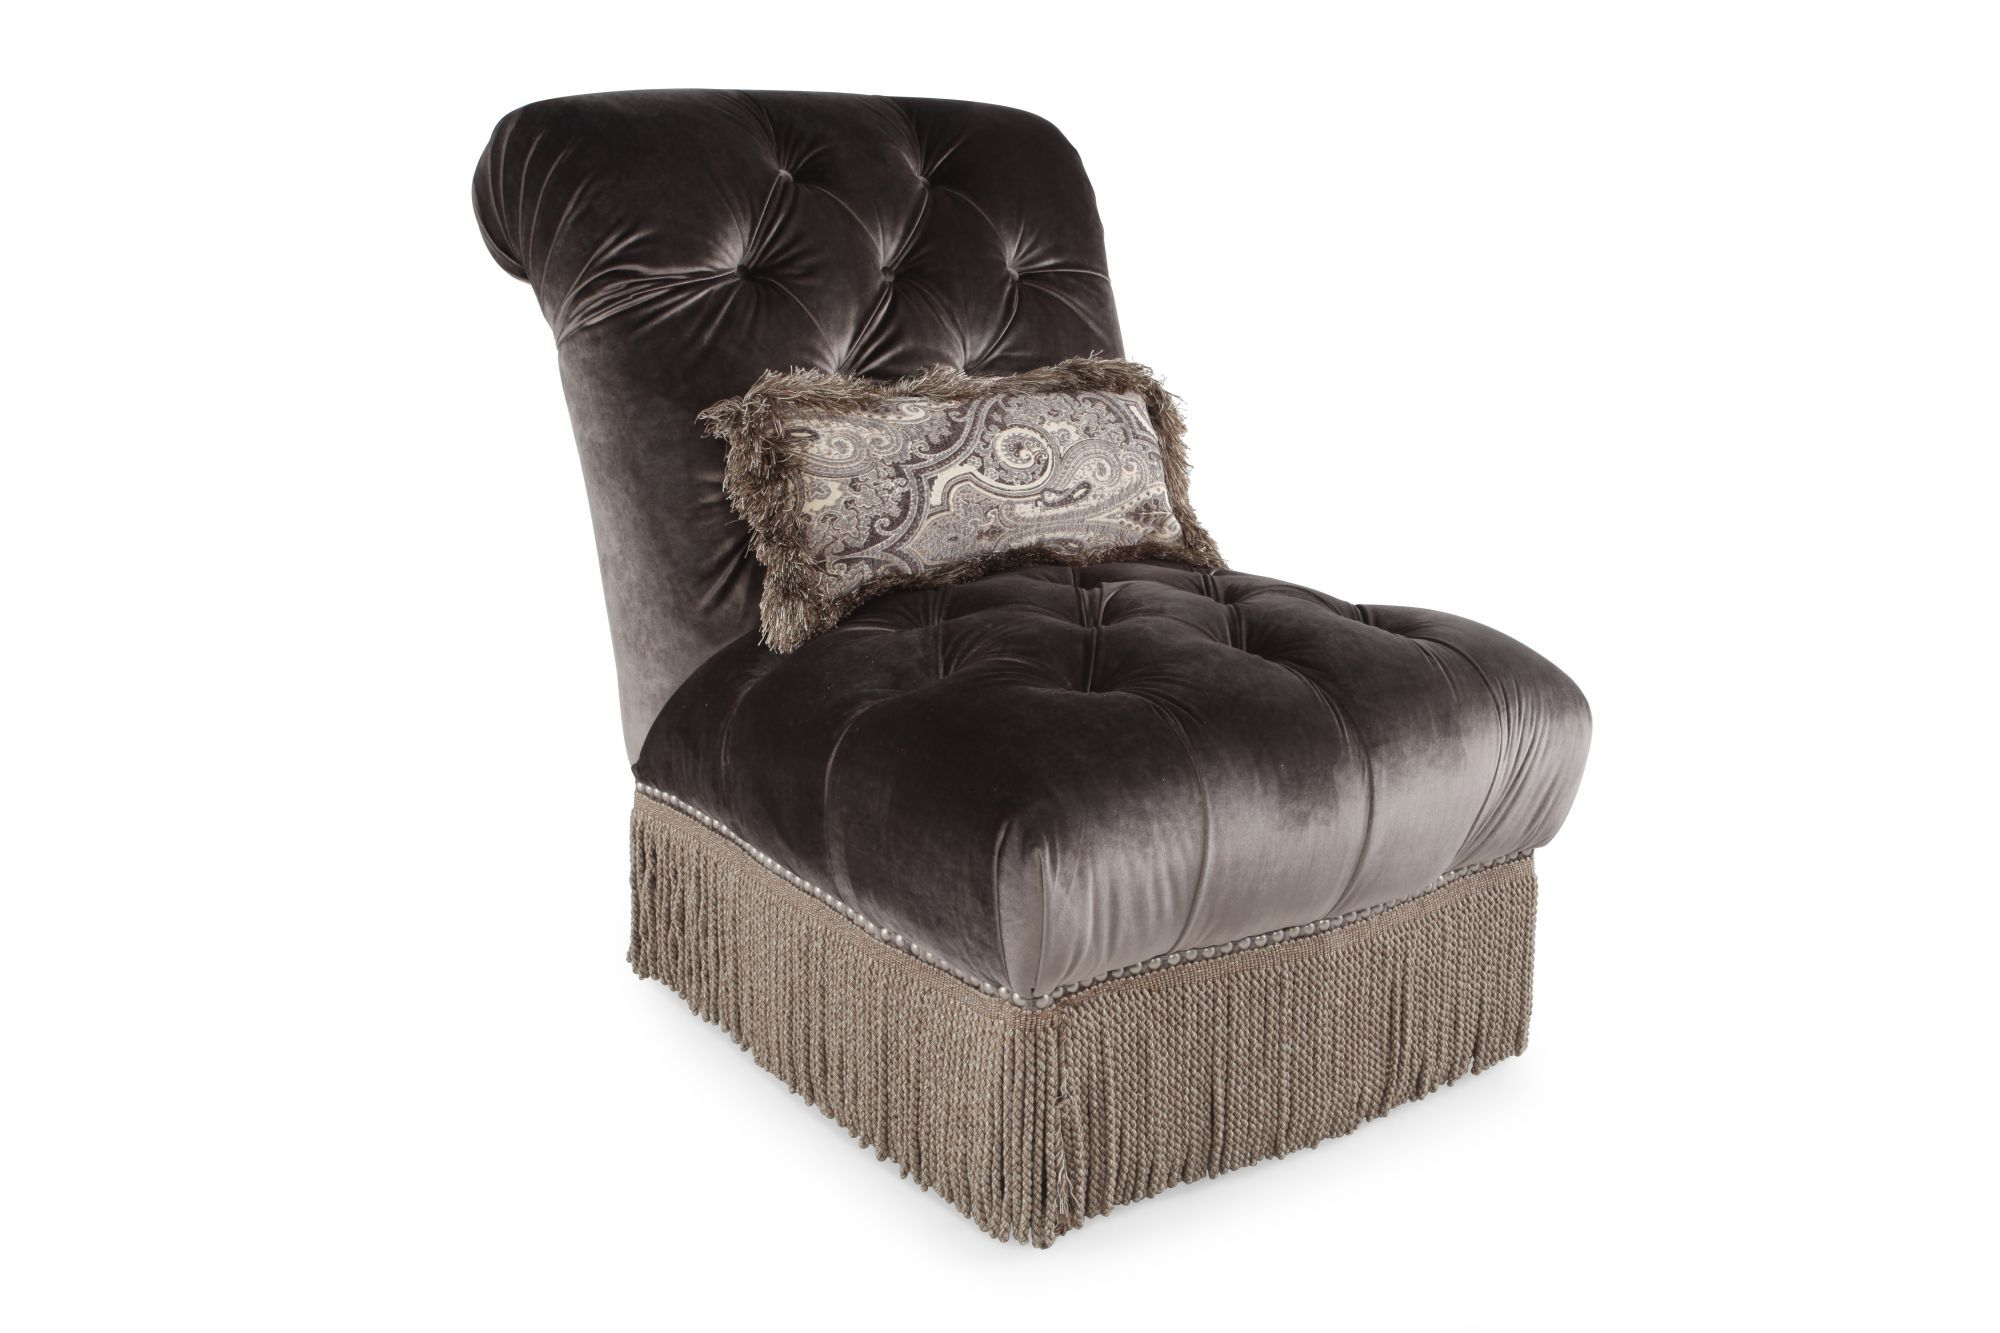 Rachlin Classics Cleopatra Chair  Mathis Brothers Furniture